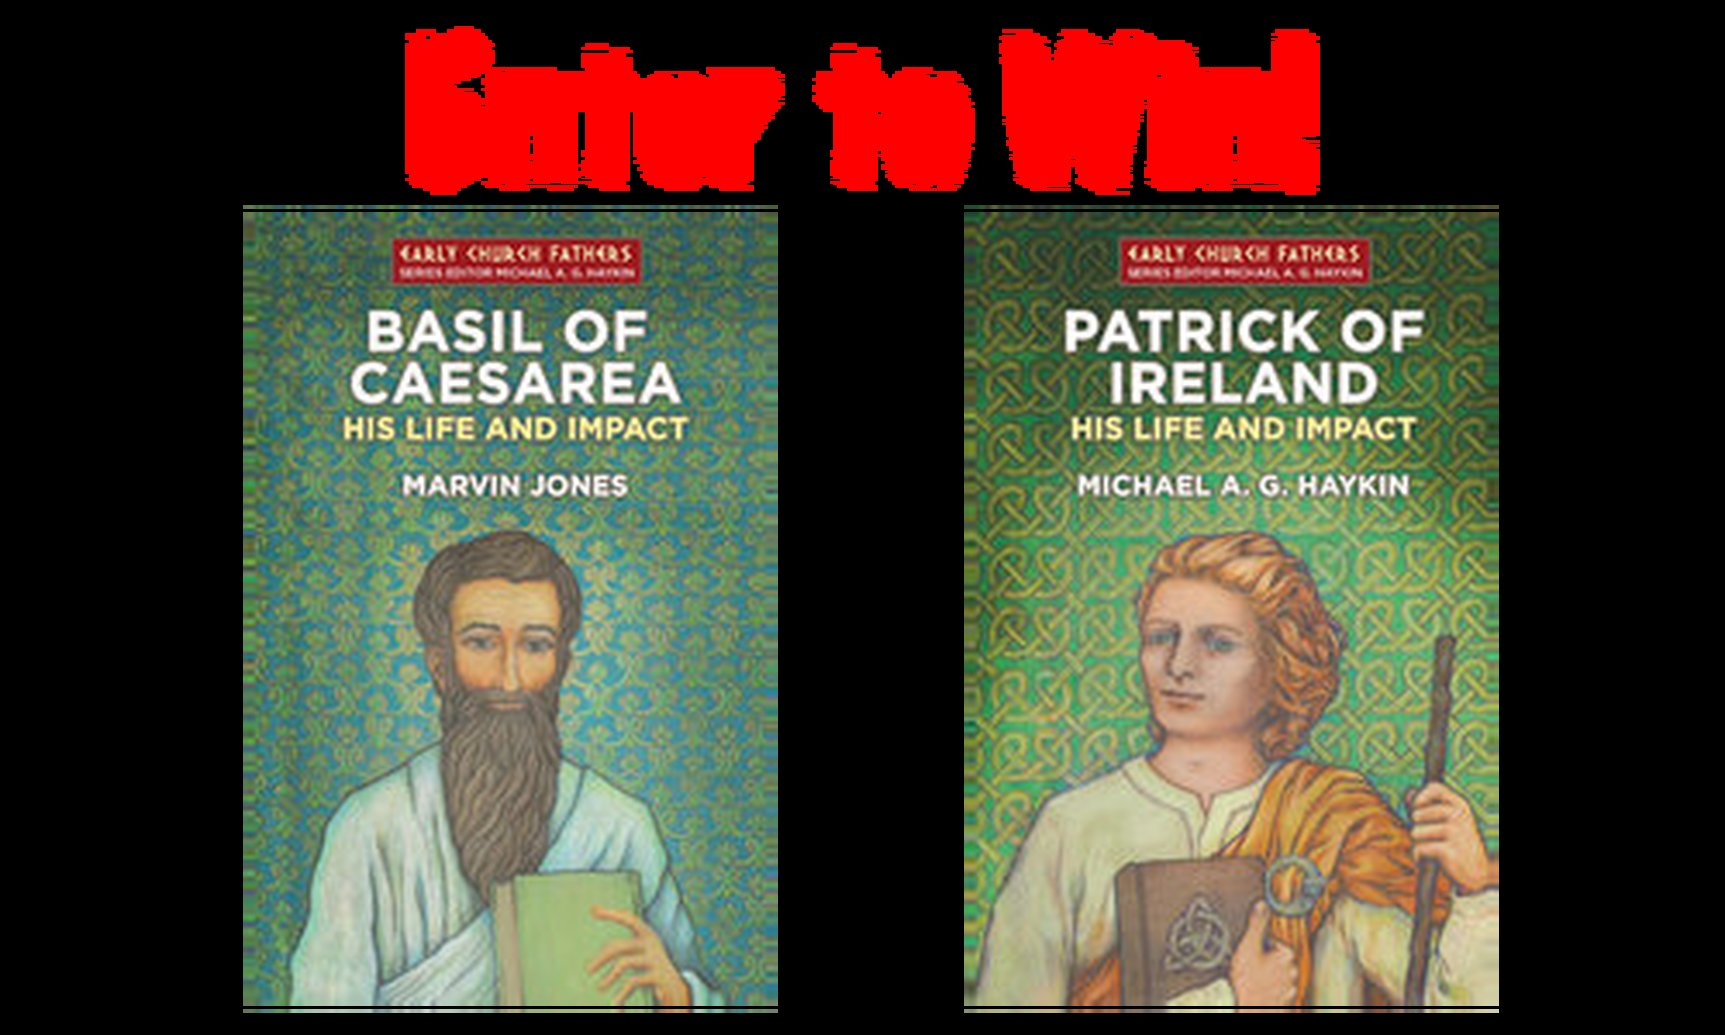 Enter to win 2 volumes from the Early Church Fathers series!